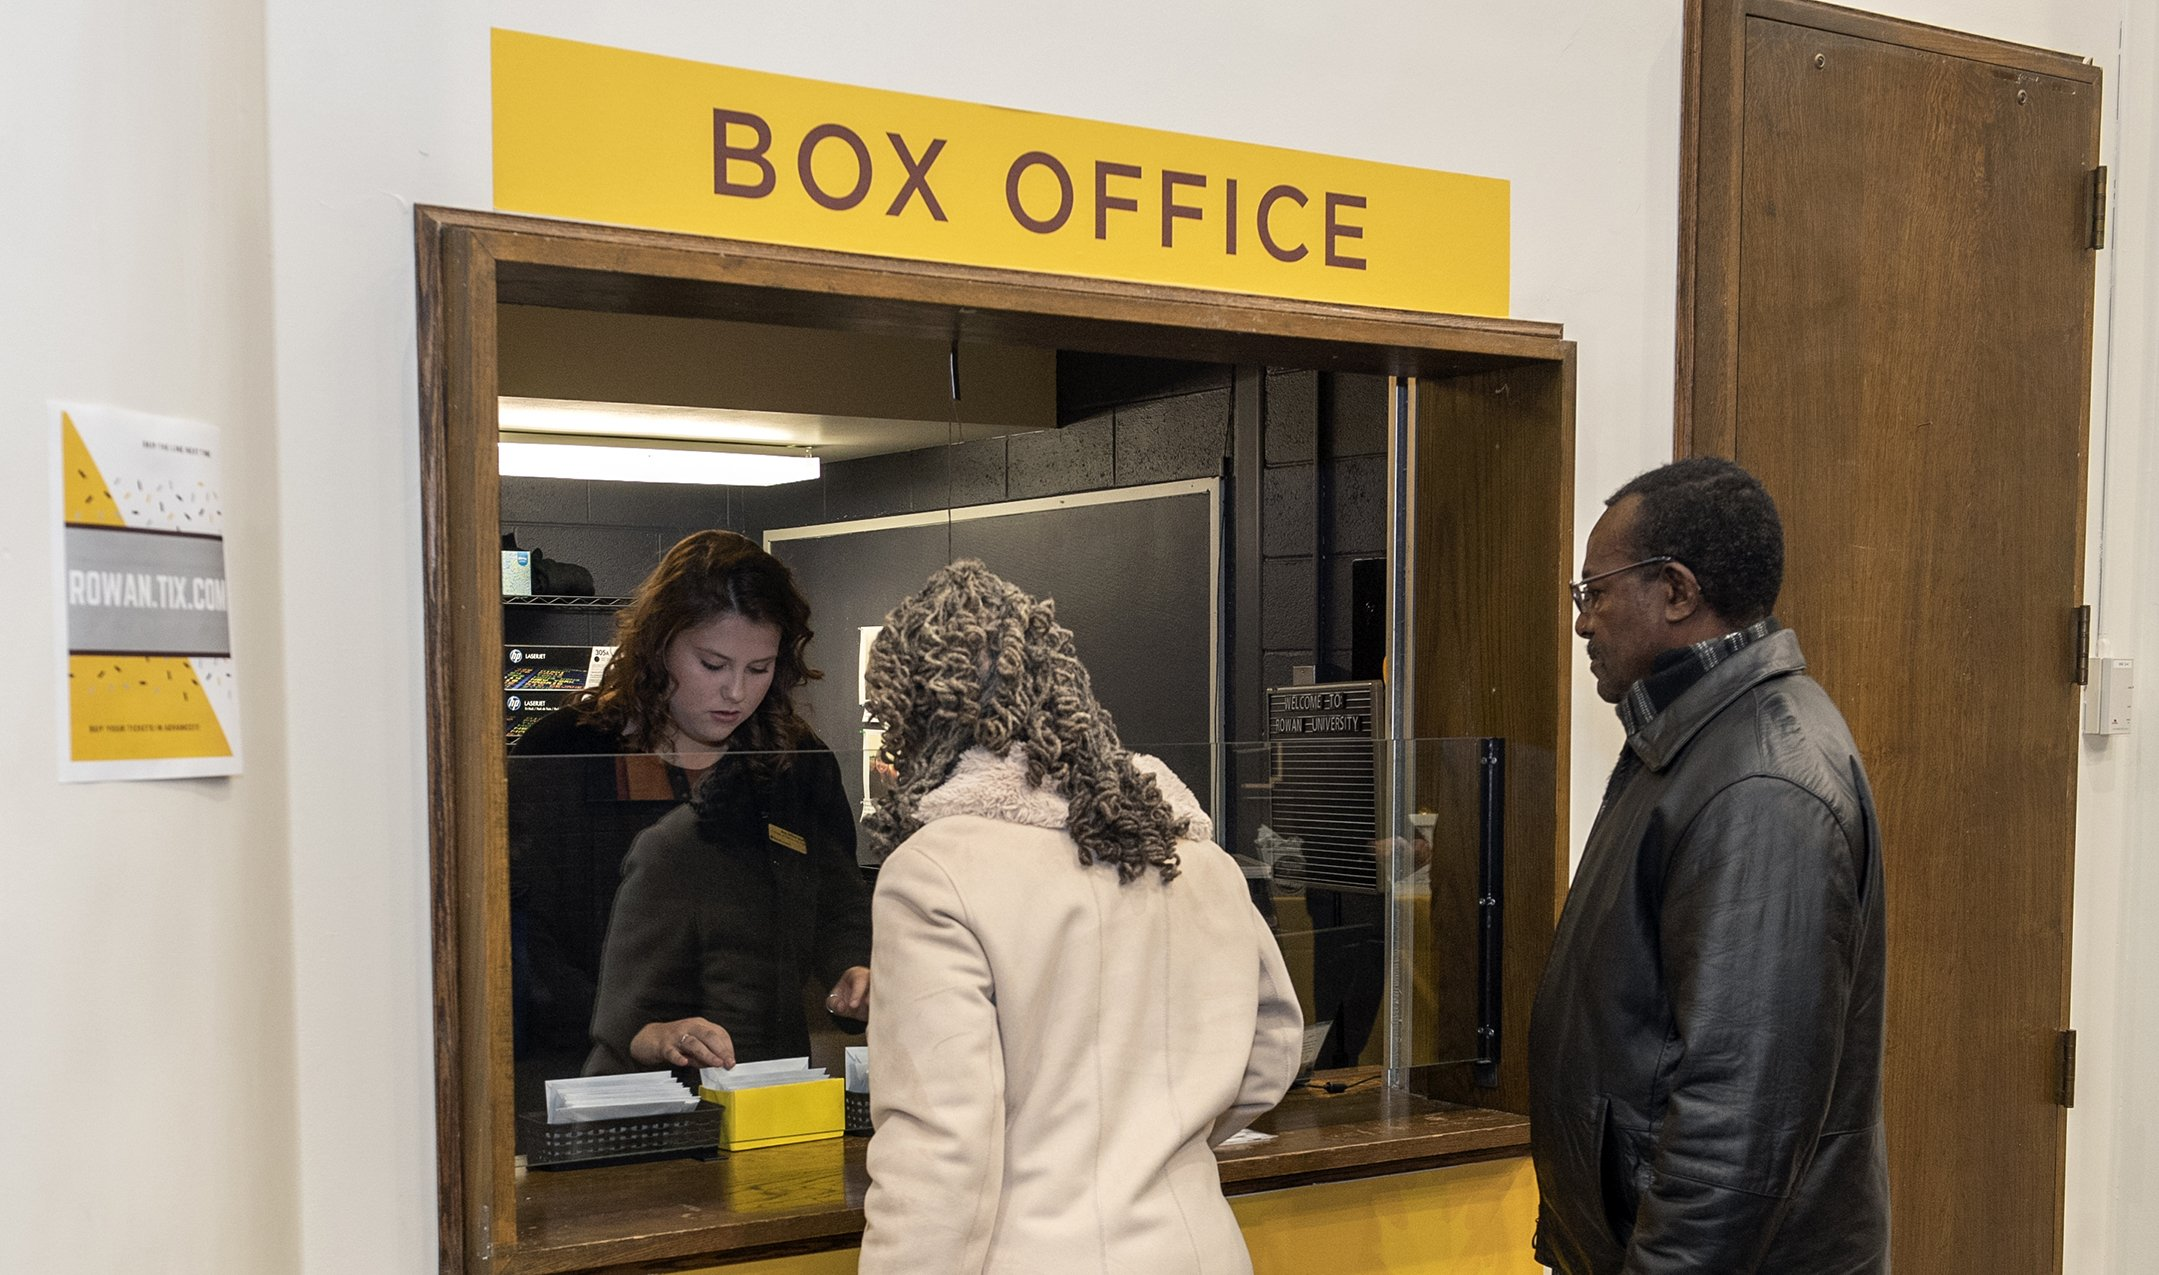 Cashier Lydia assisting patrons with ticketing at the Pfleeger Concert Hall box office window